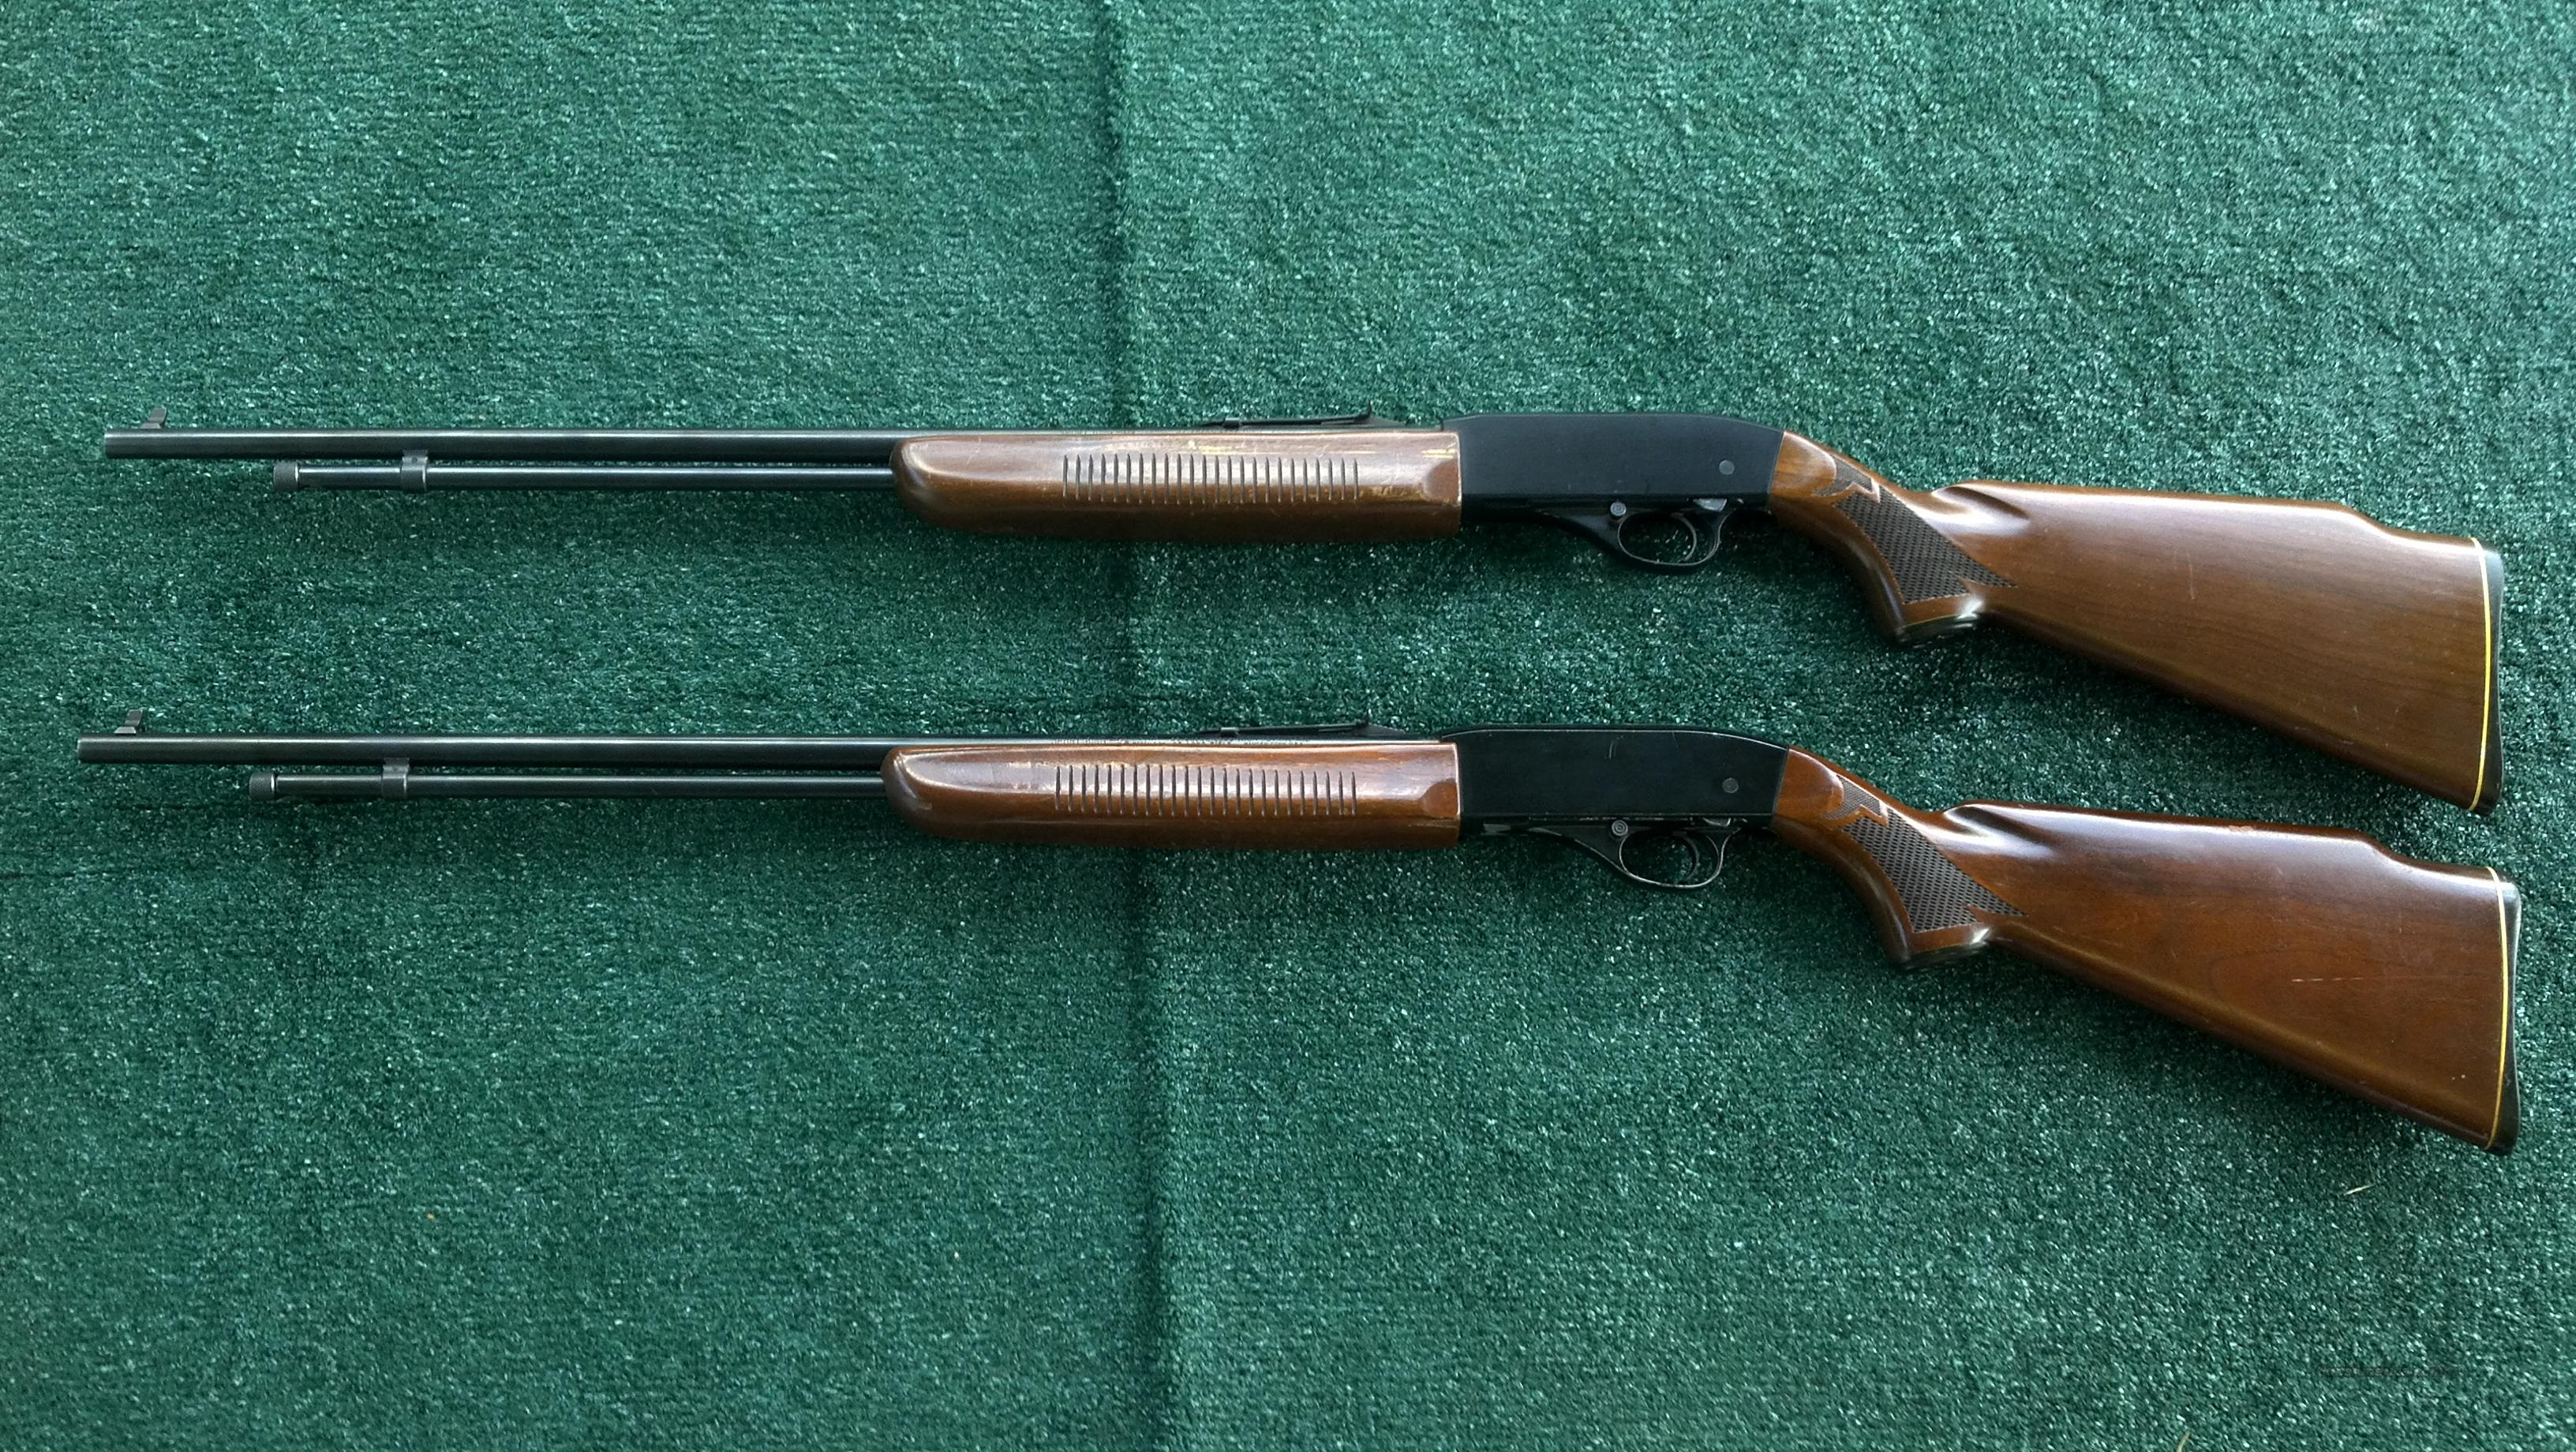 High Standard Sport King P1011 .22 (Short, Long or LR) Pump-Action Rifle   Guns > Rifles > High Standard Rifles